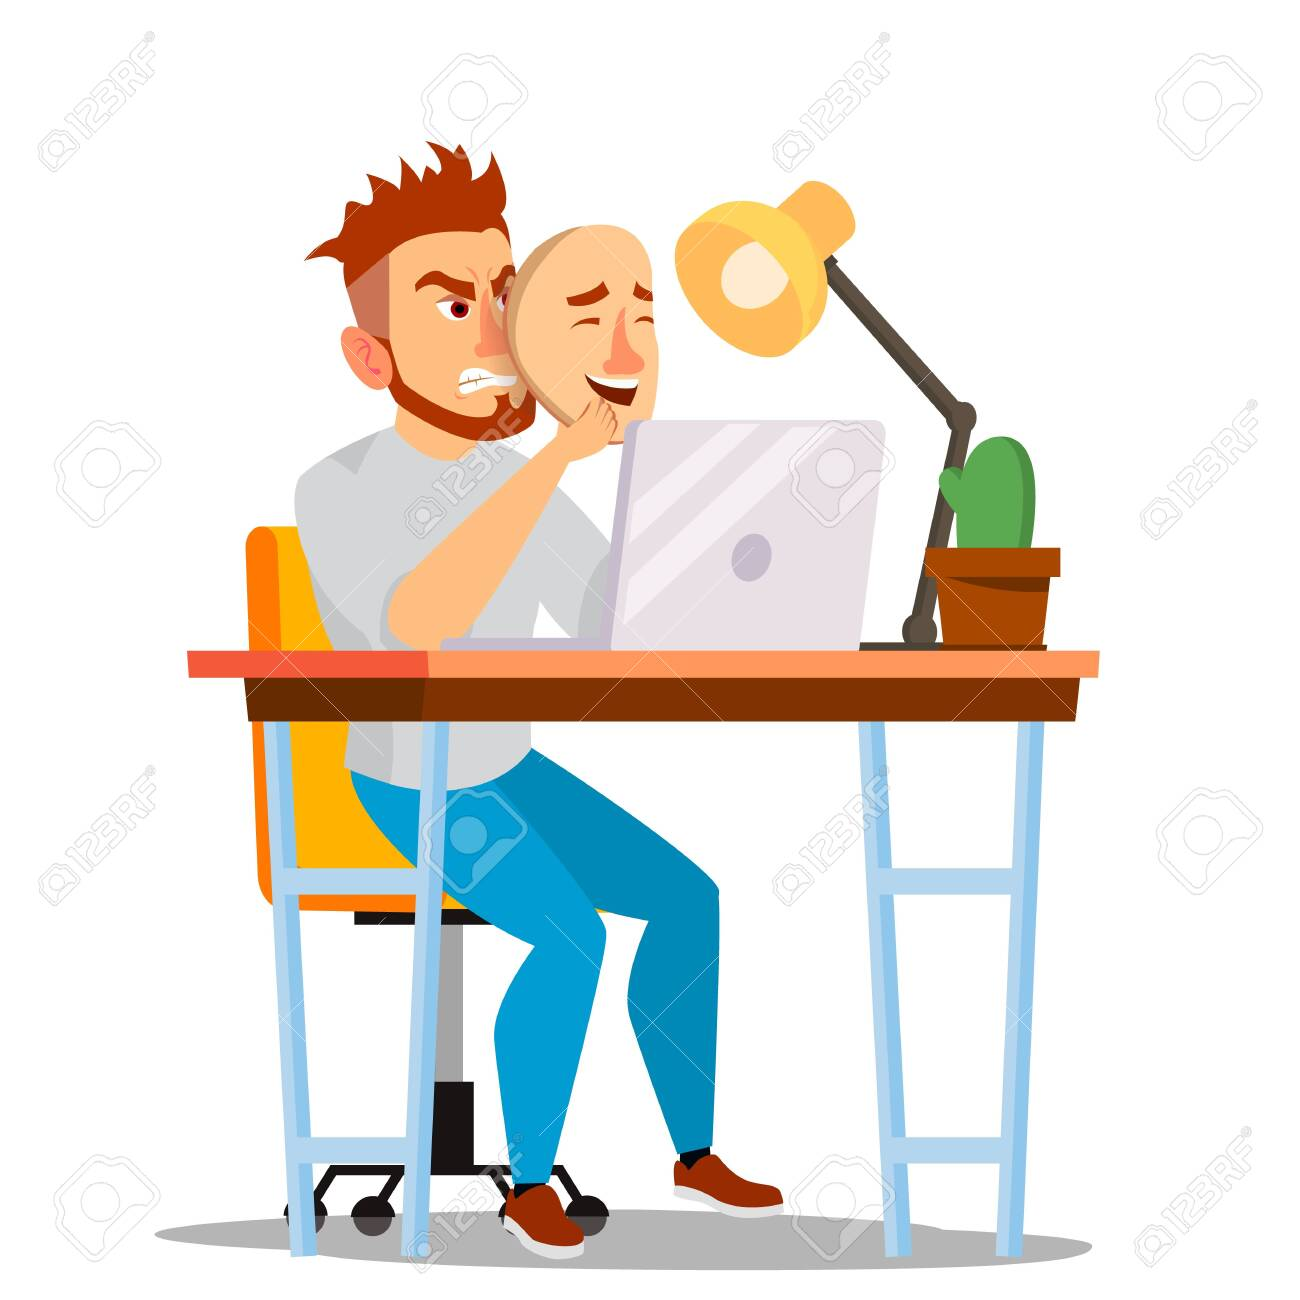 Fake Person . Bad, Tired Man. Deceive Concept. Businessman Wear Smile Mask. Isolated Flat Cartoon Character Illustration - 128884970